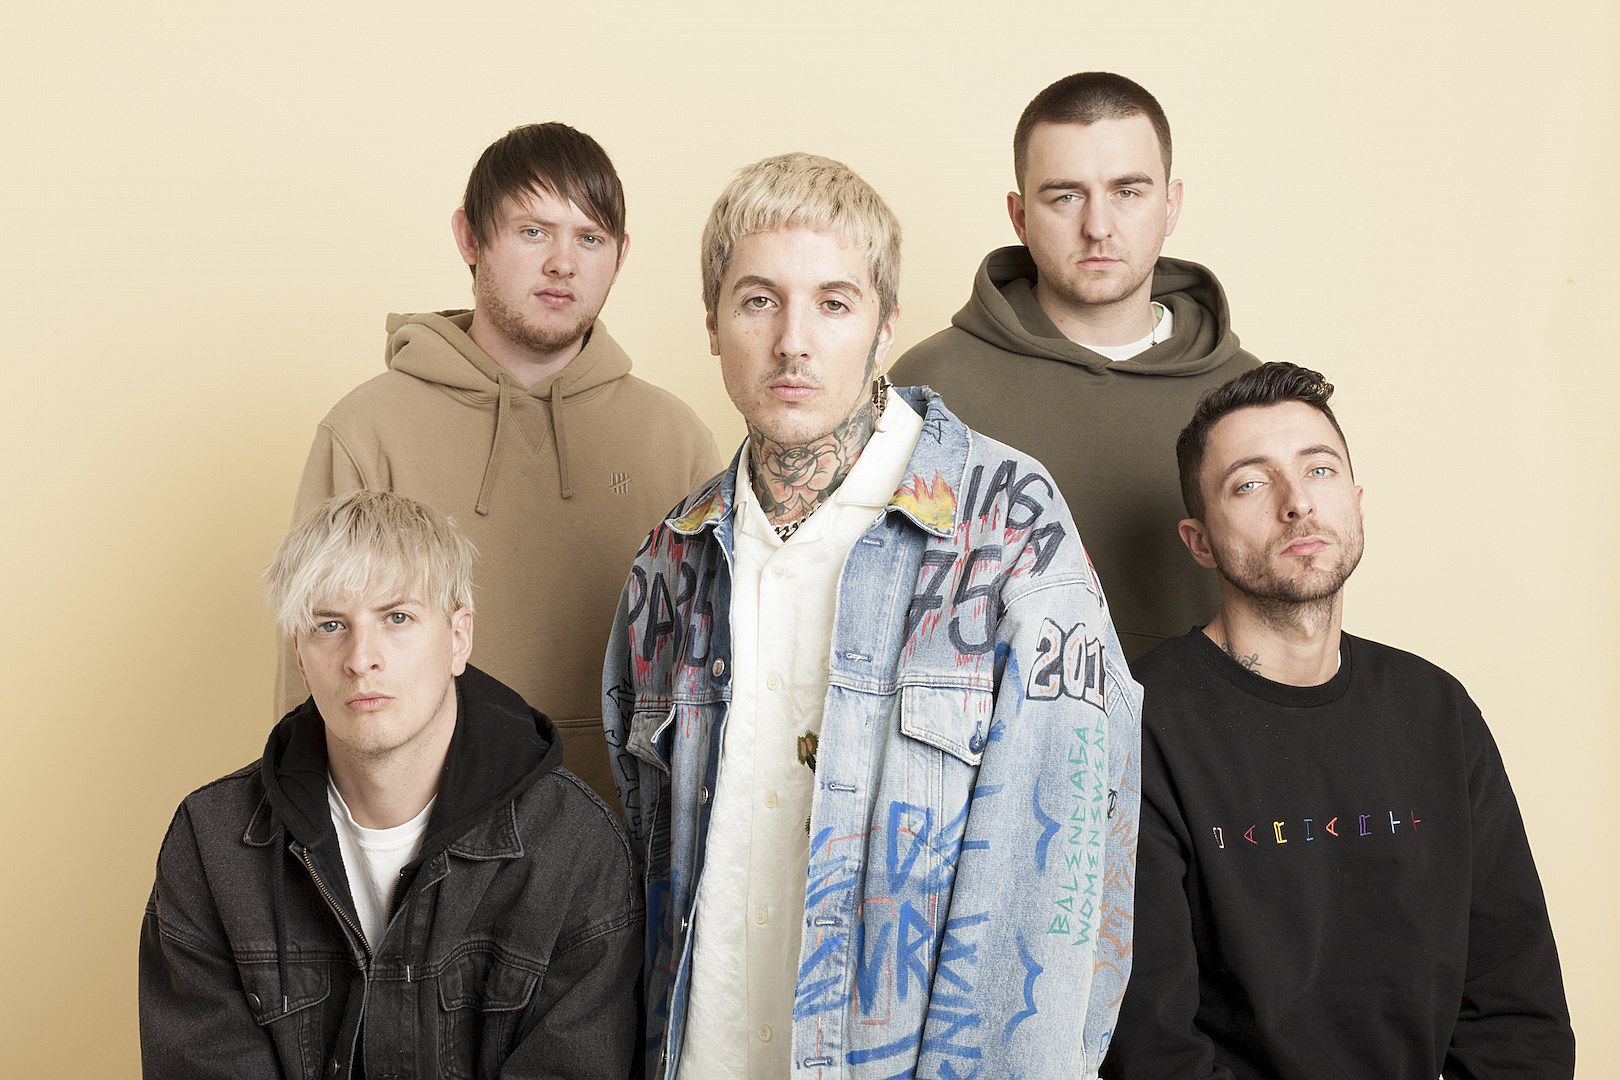 Bring Me The Horizon fans may get excited now, as the band has confirmed their return to the studios for new music.